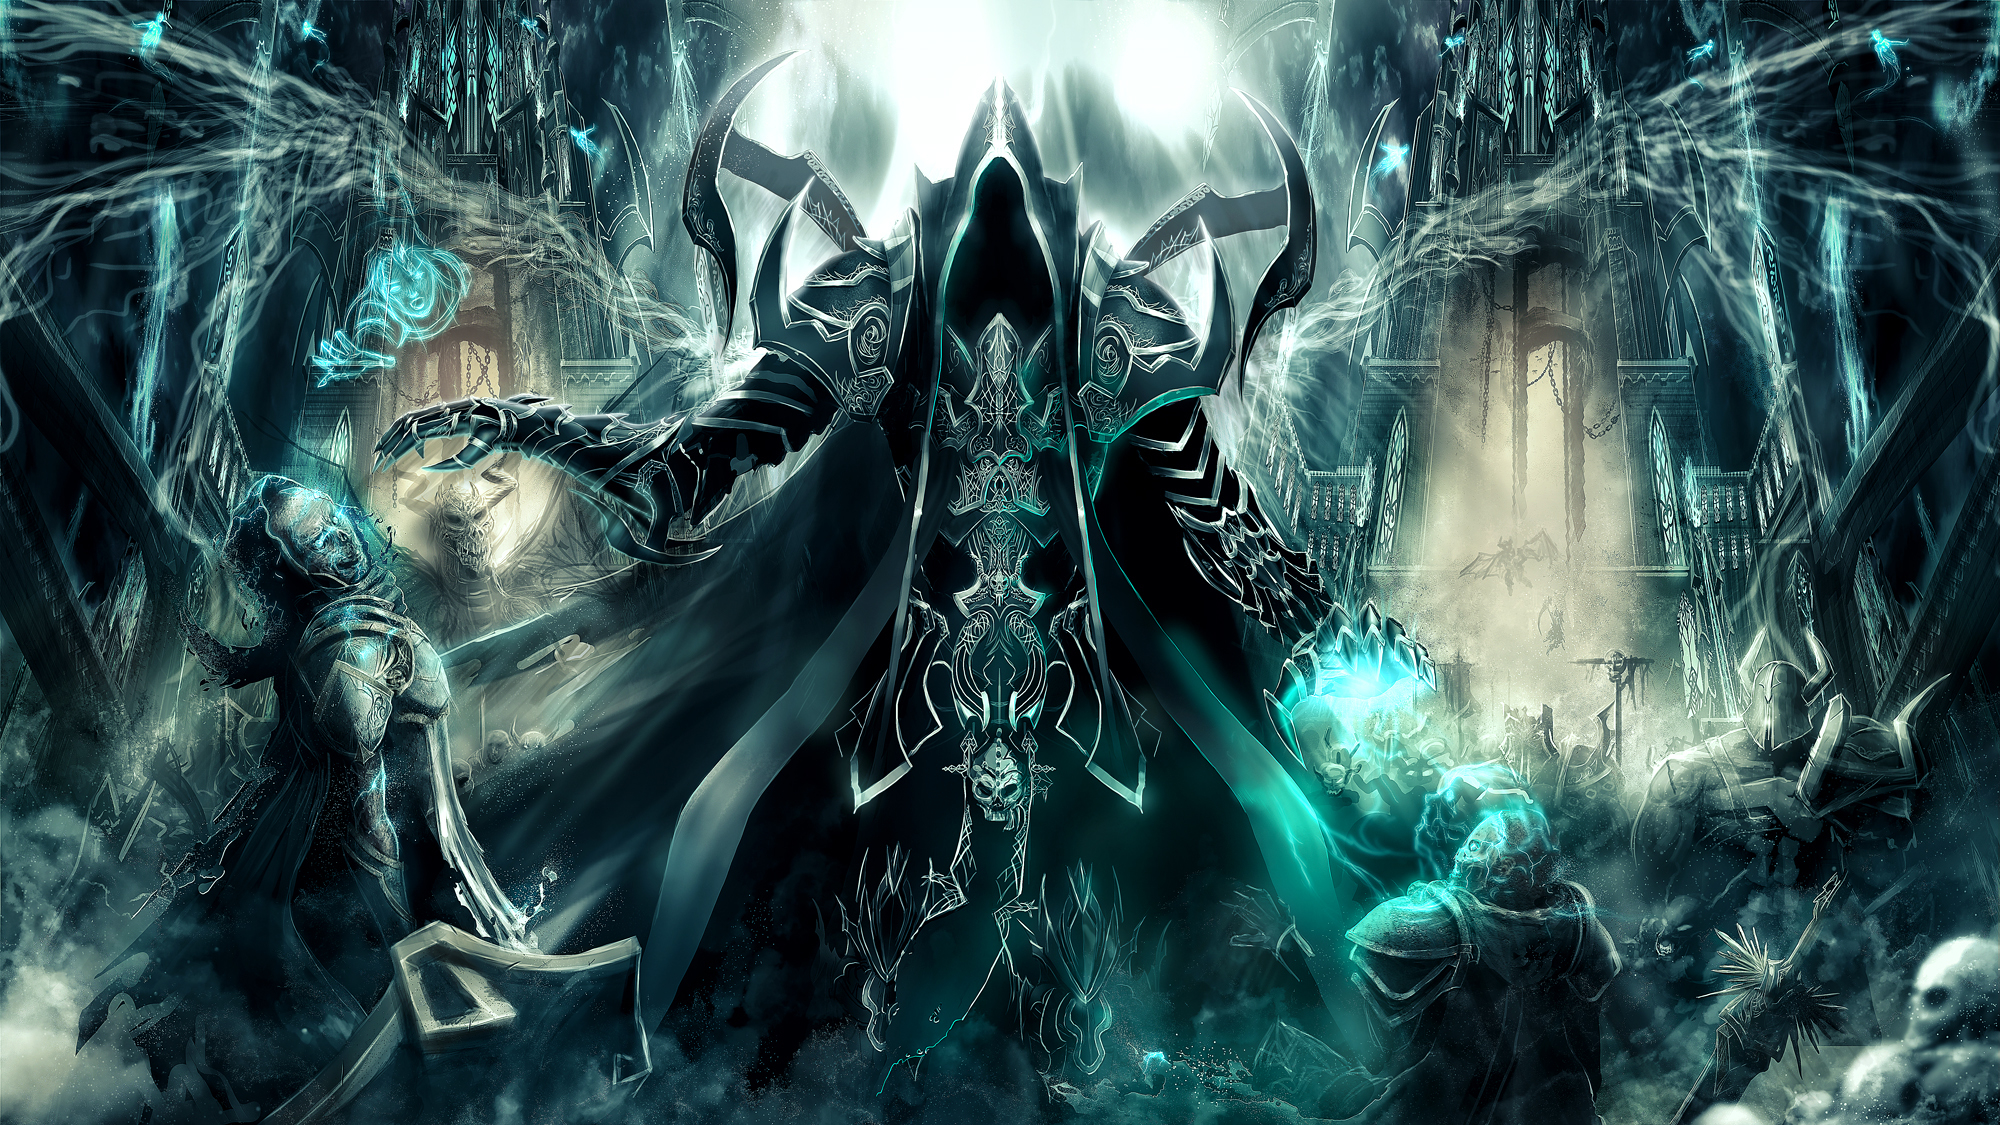 97 Malthael (Diablo III) HD Wallpapers | Background Images ...